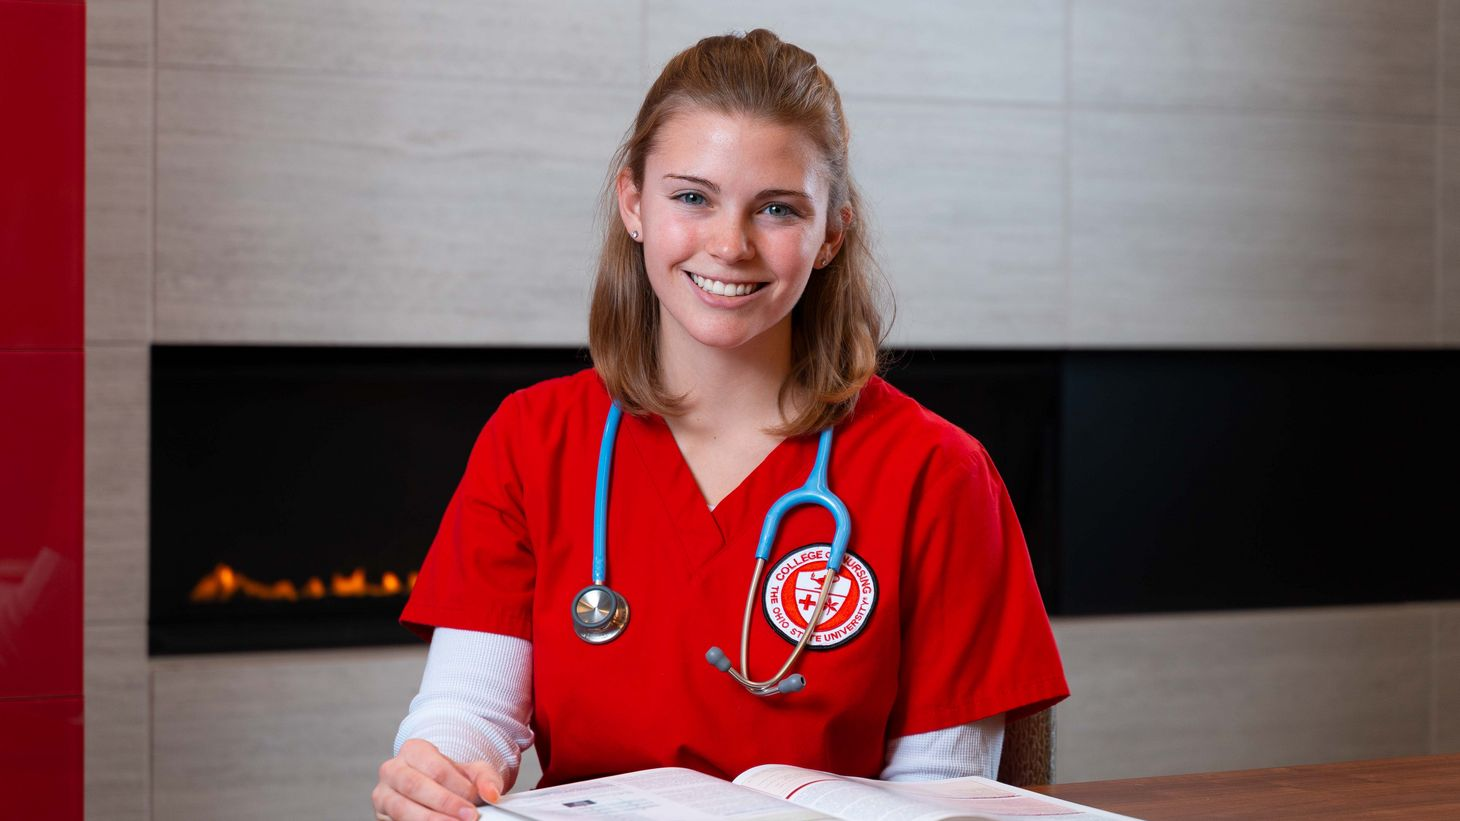 nursing student in red scrubs reading textbook